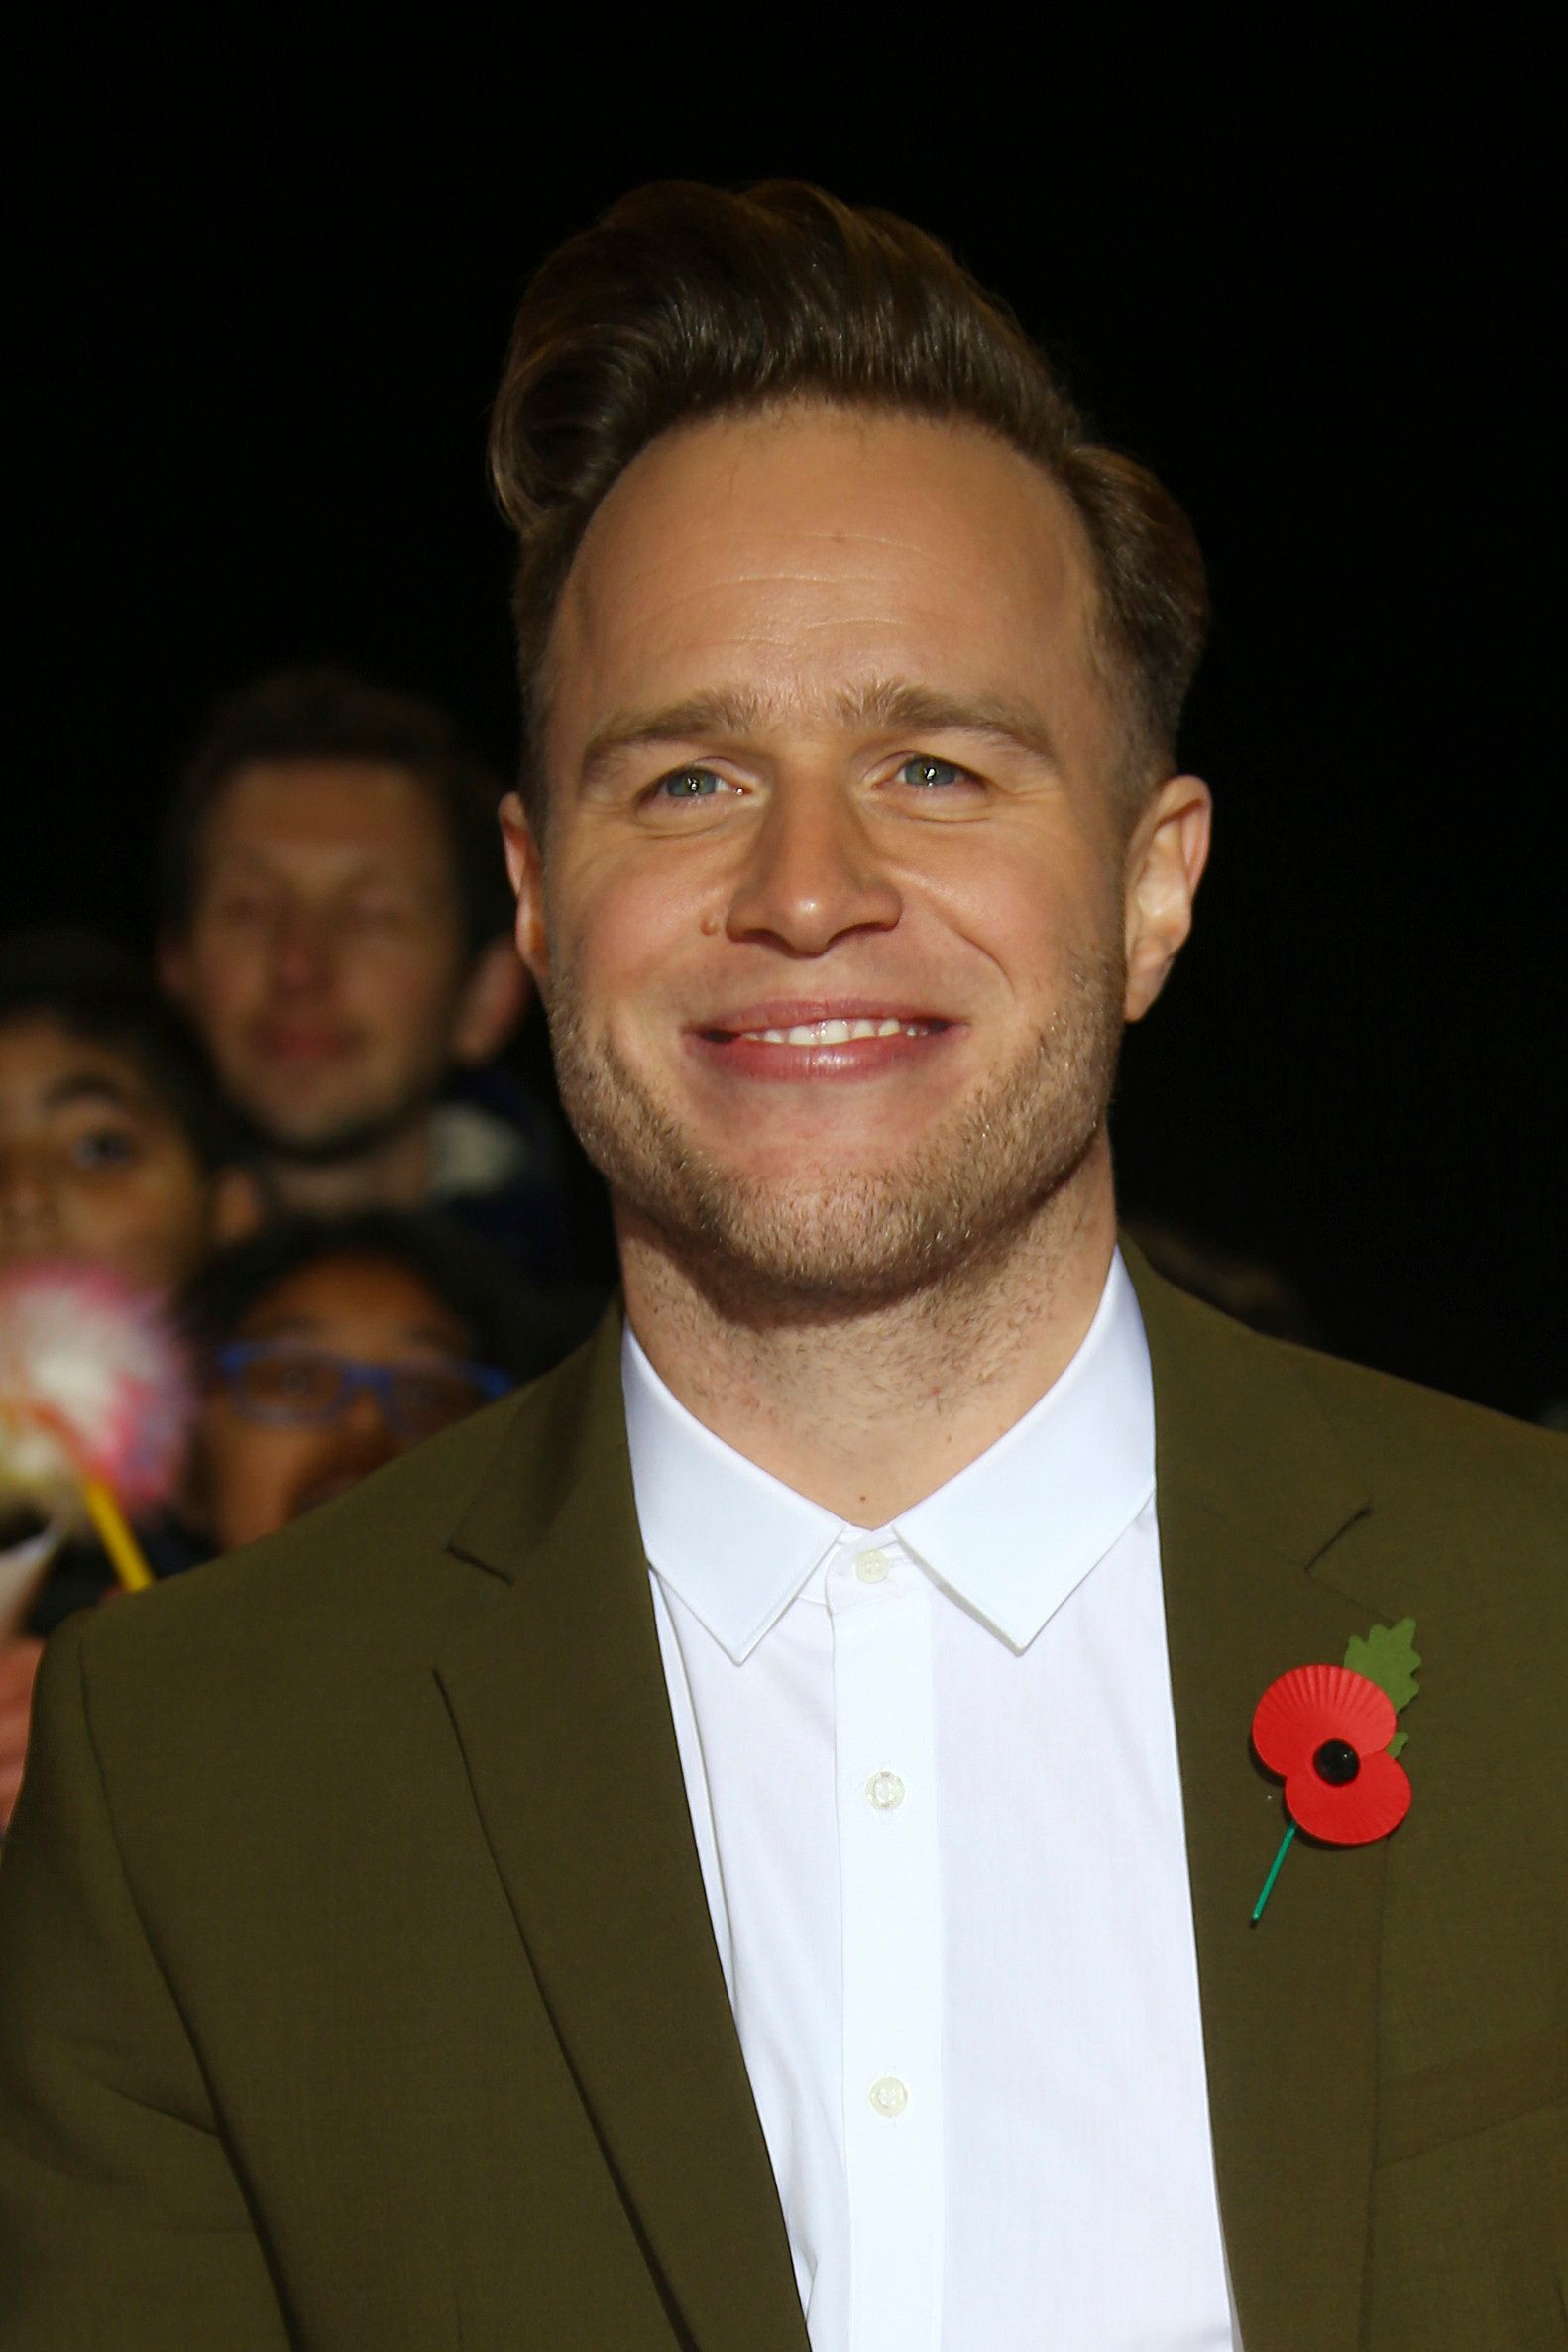 Olly Murs Made Himself 'Sick With Anxiety' After Landing Job At 'The